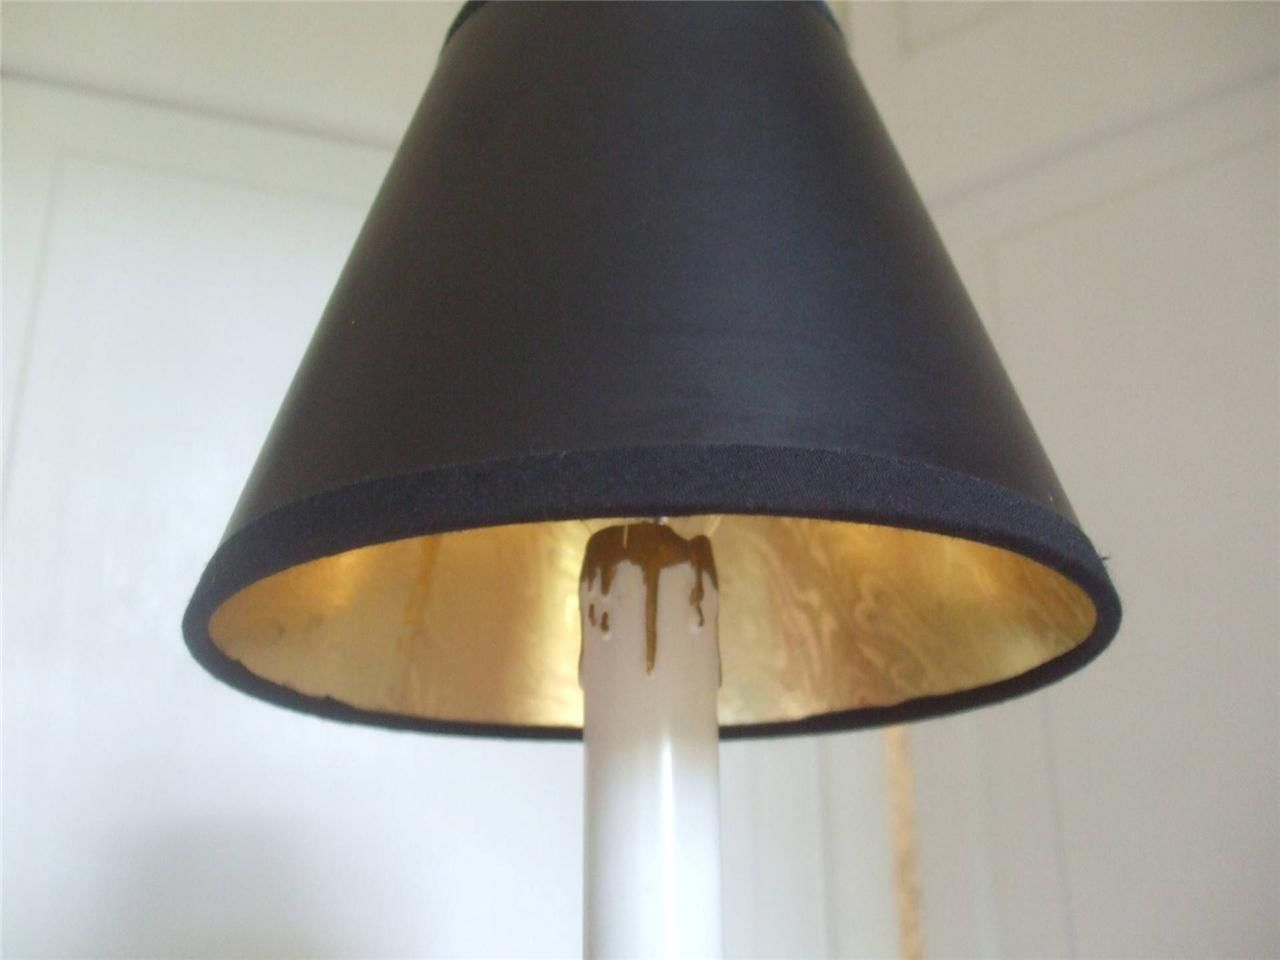 chandelier lamp sconce clip on small shade black gold color plastic 5. Black Bedroom Furniture Sets. Home Design Ideas